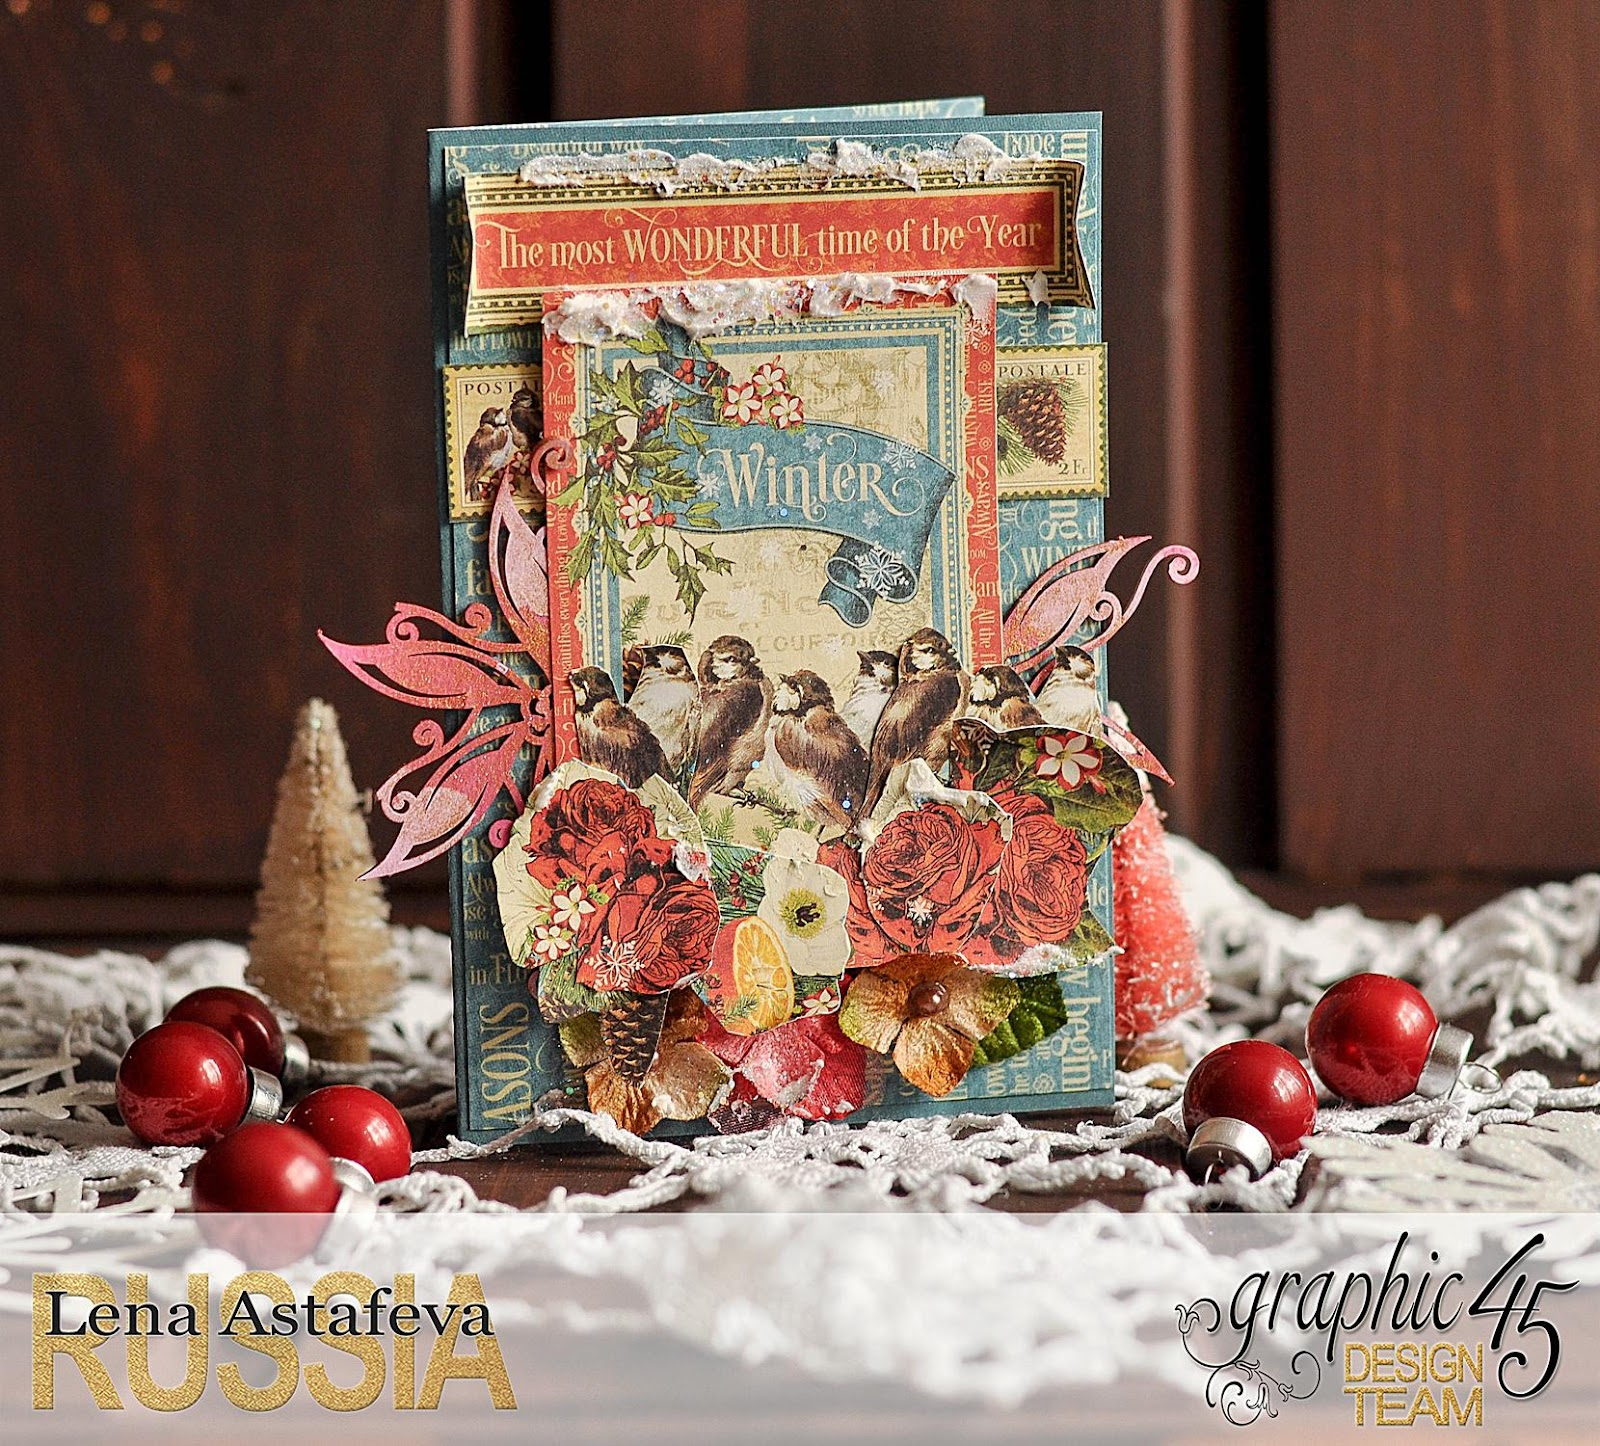 Cards-Seasons-Graphic 45-by Lena Astafeva-21.jpg